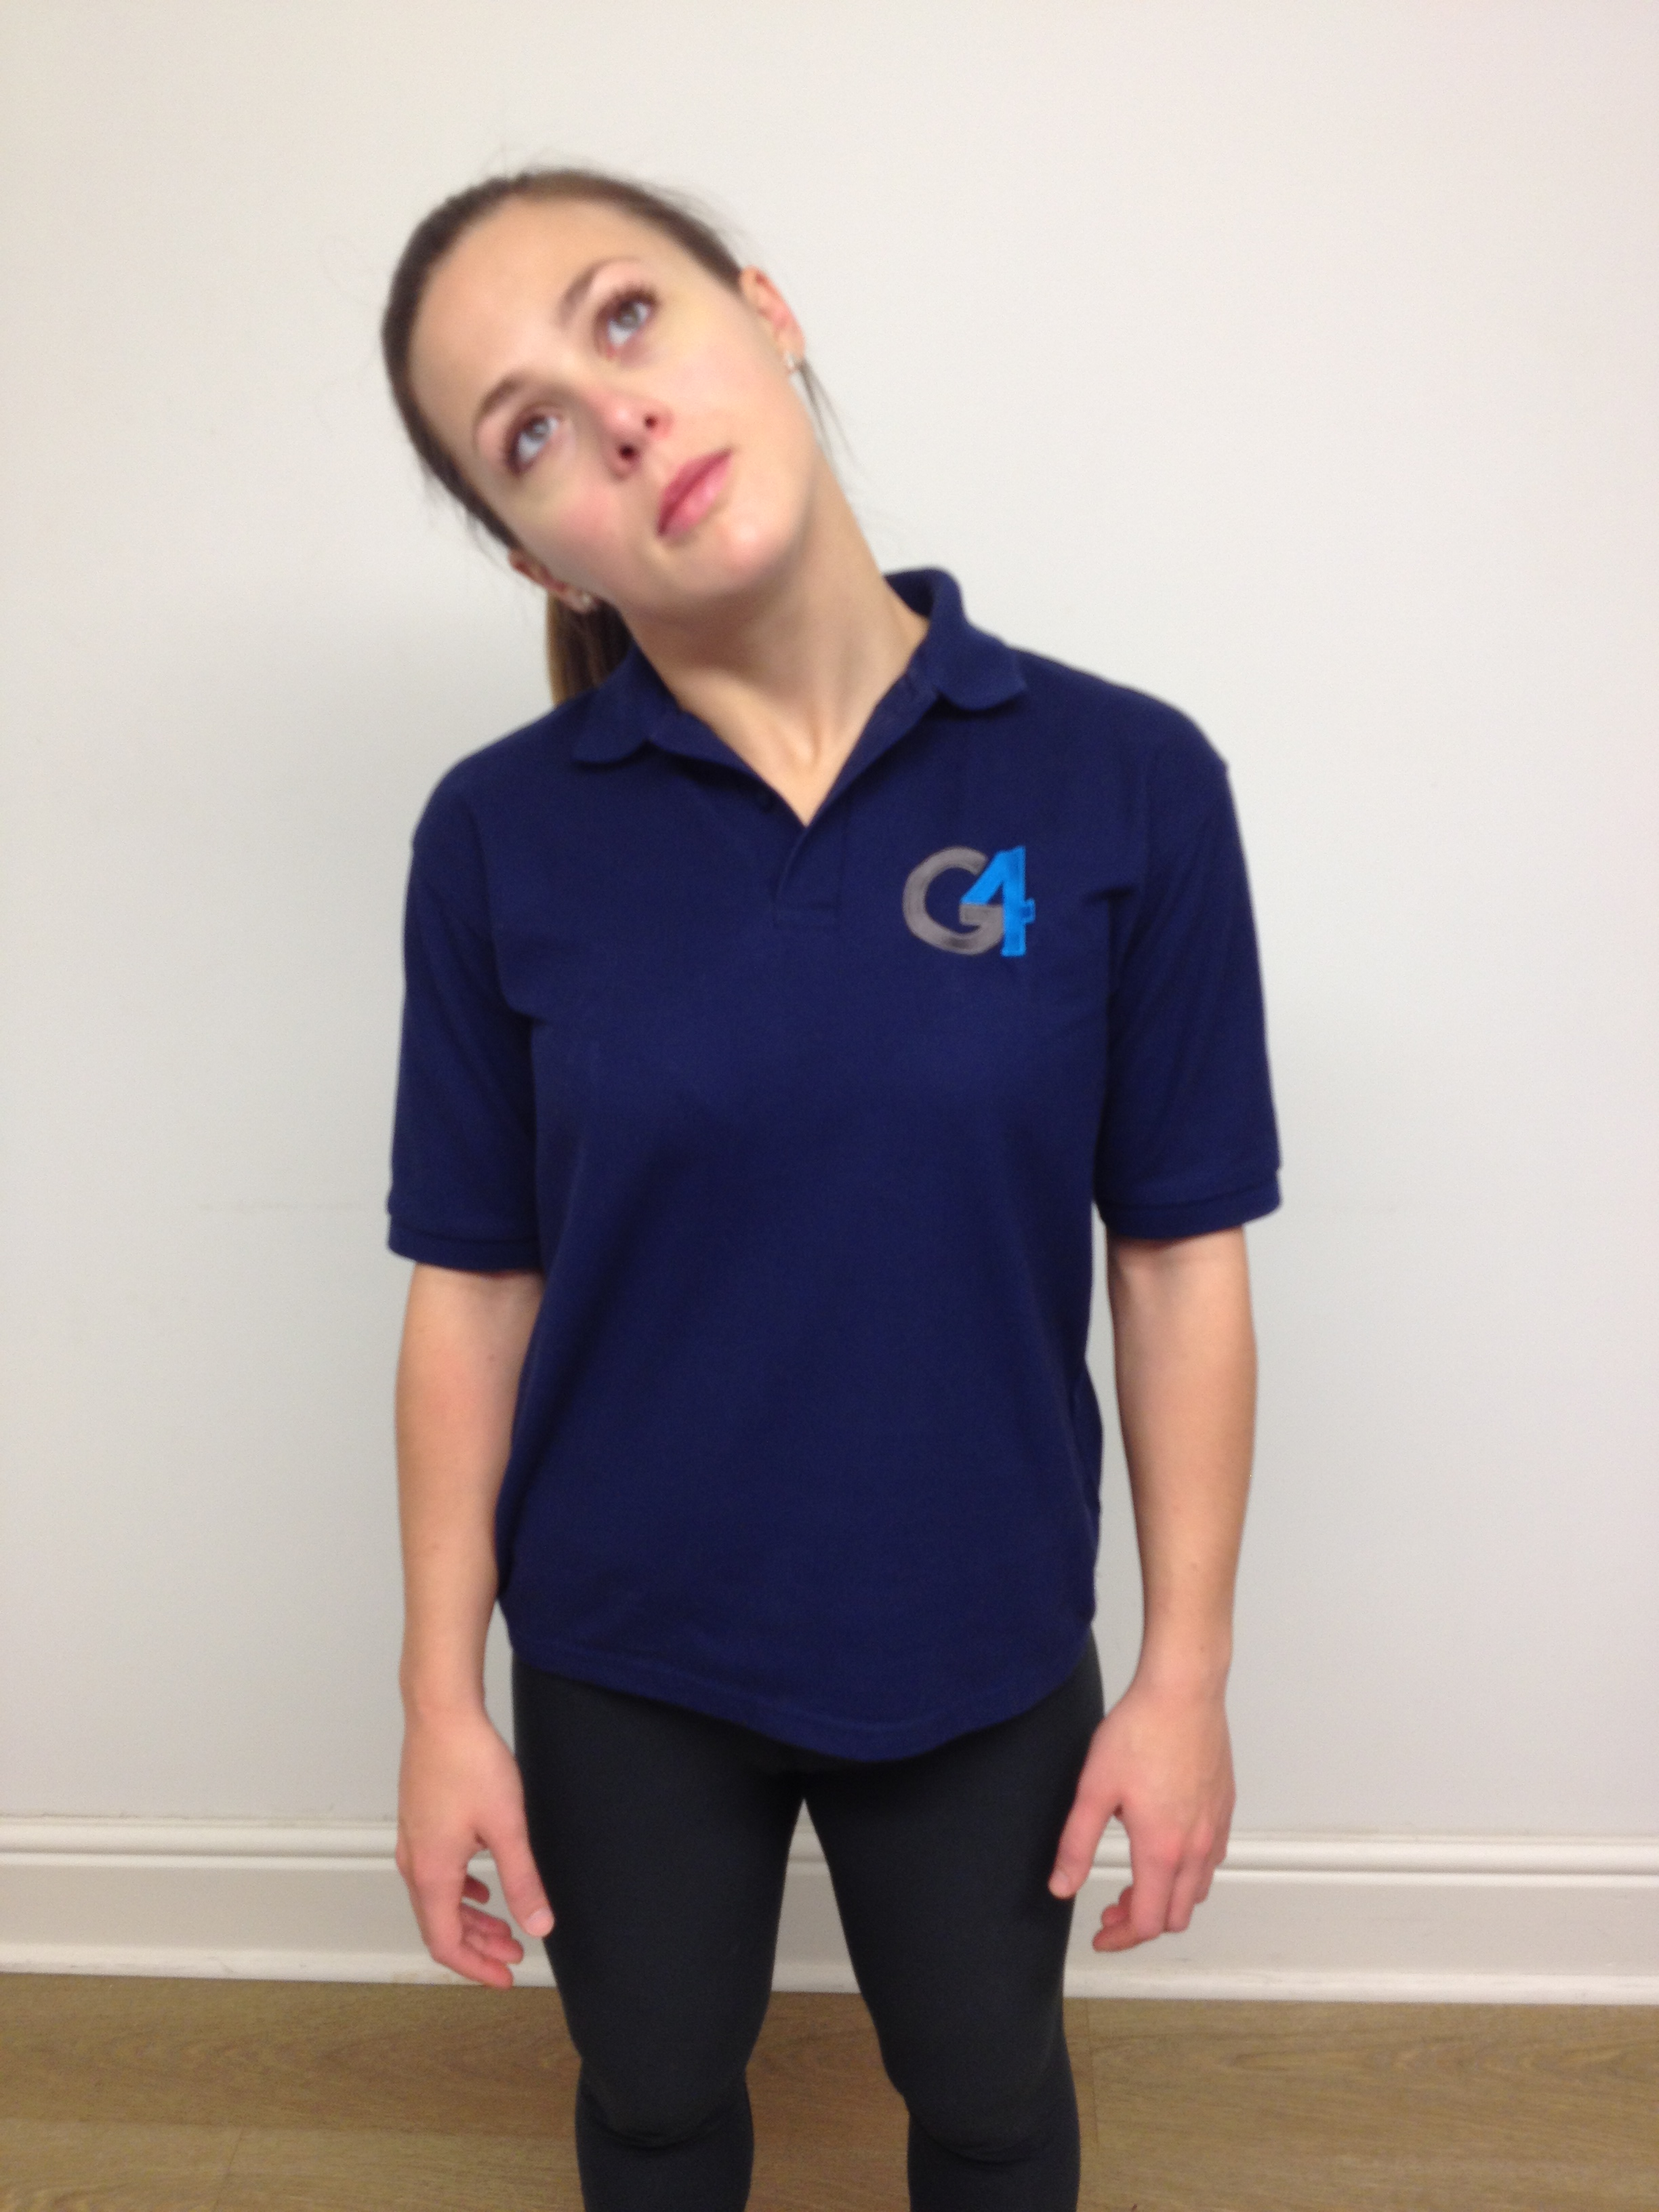 Neck Stretch Side Flexion G4 Physiotherapy Amp Fitness